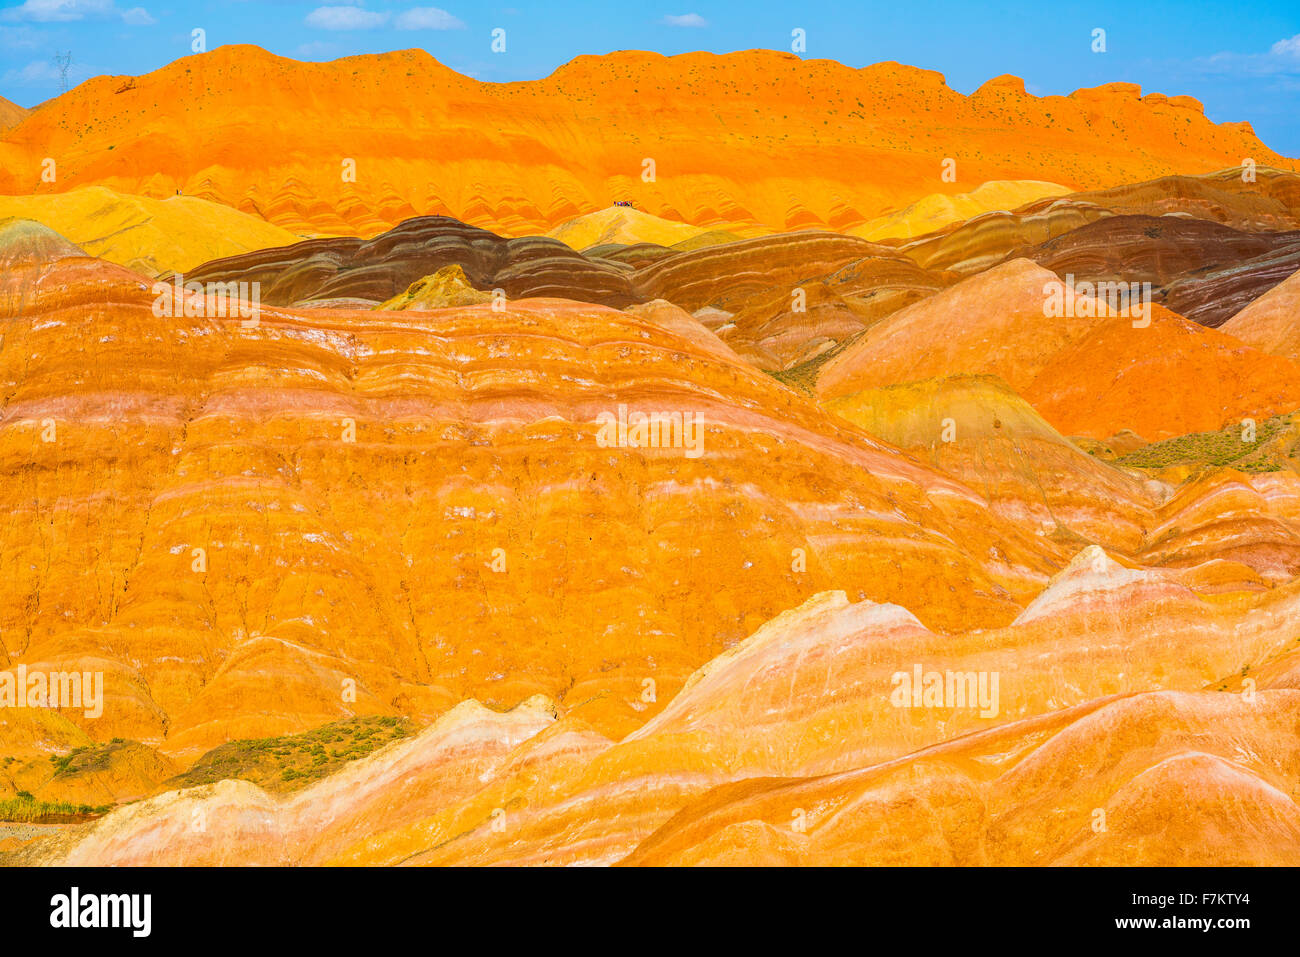 Coloful forms at Zhanhye Danxie Geo Park, China  Gansu Province, Ballands eroded in muliple colors - Stock Image